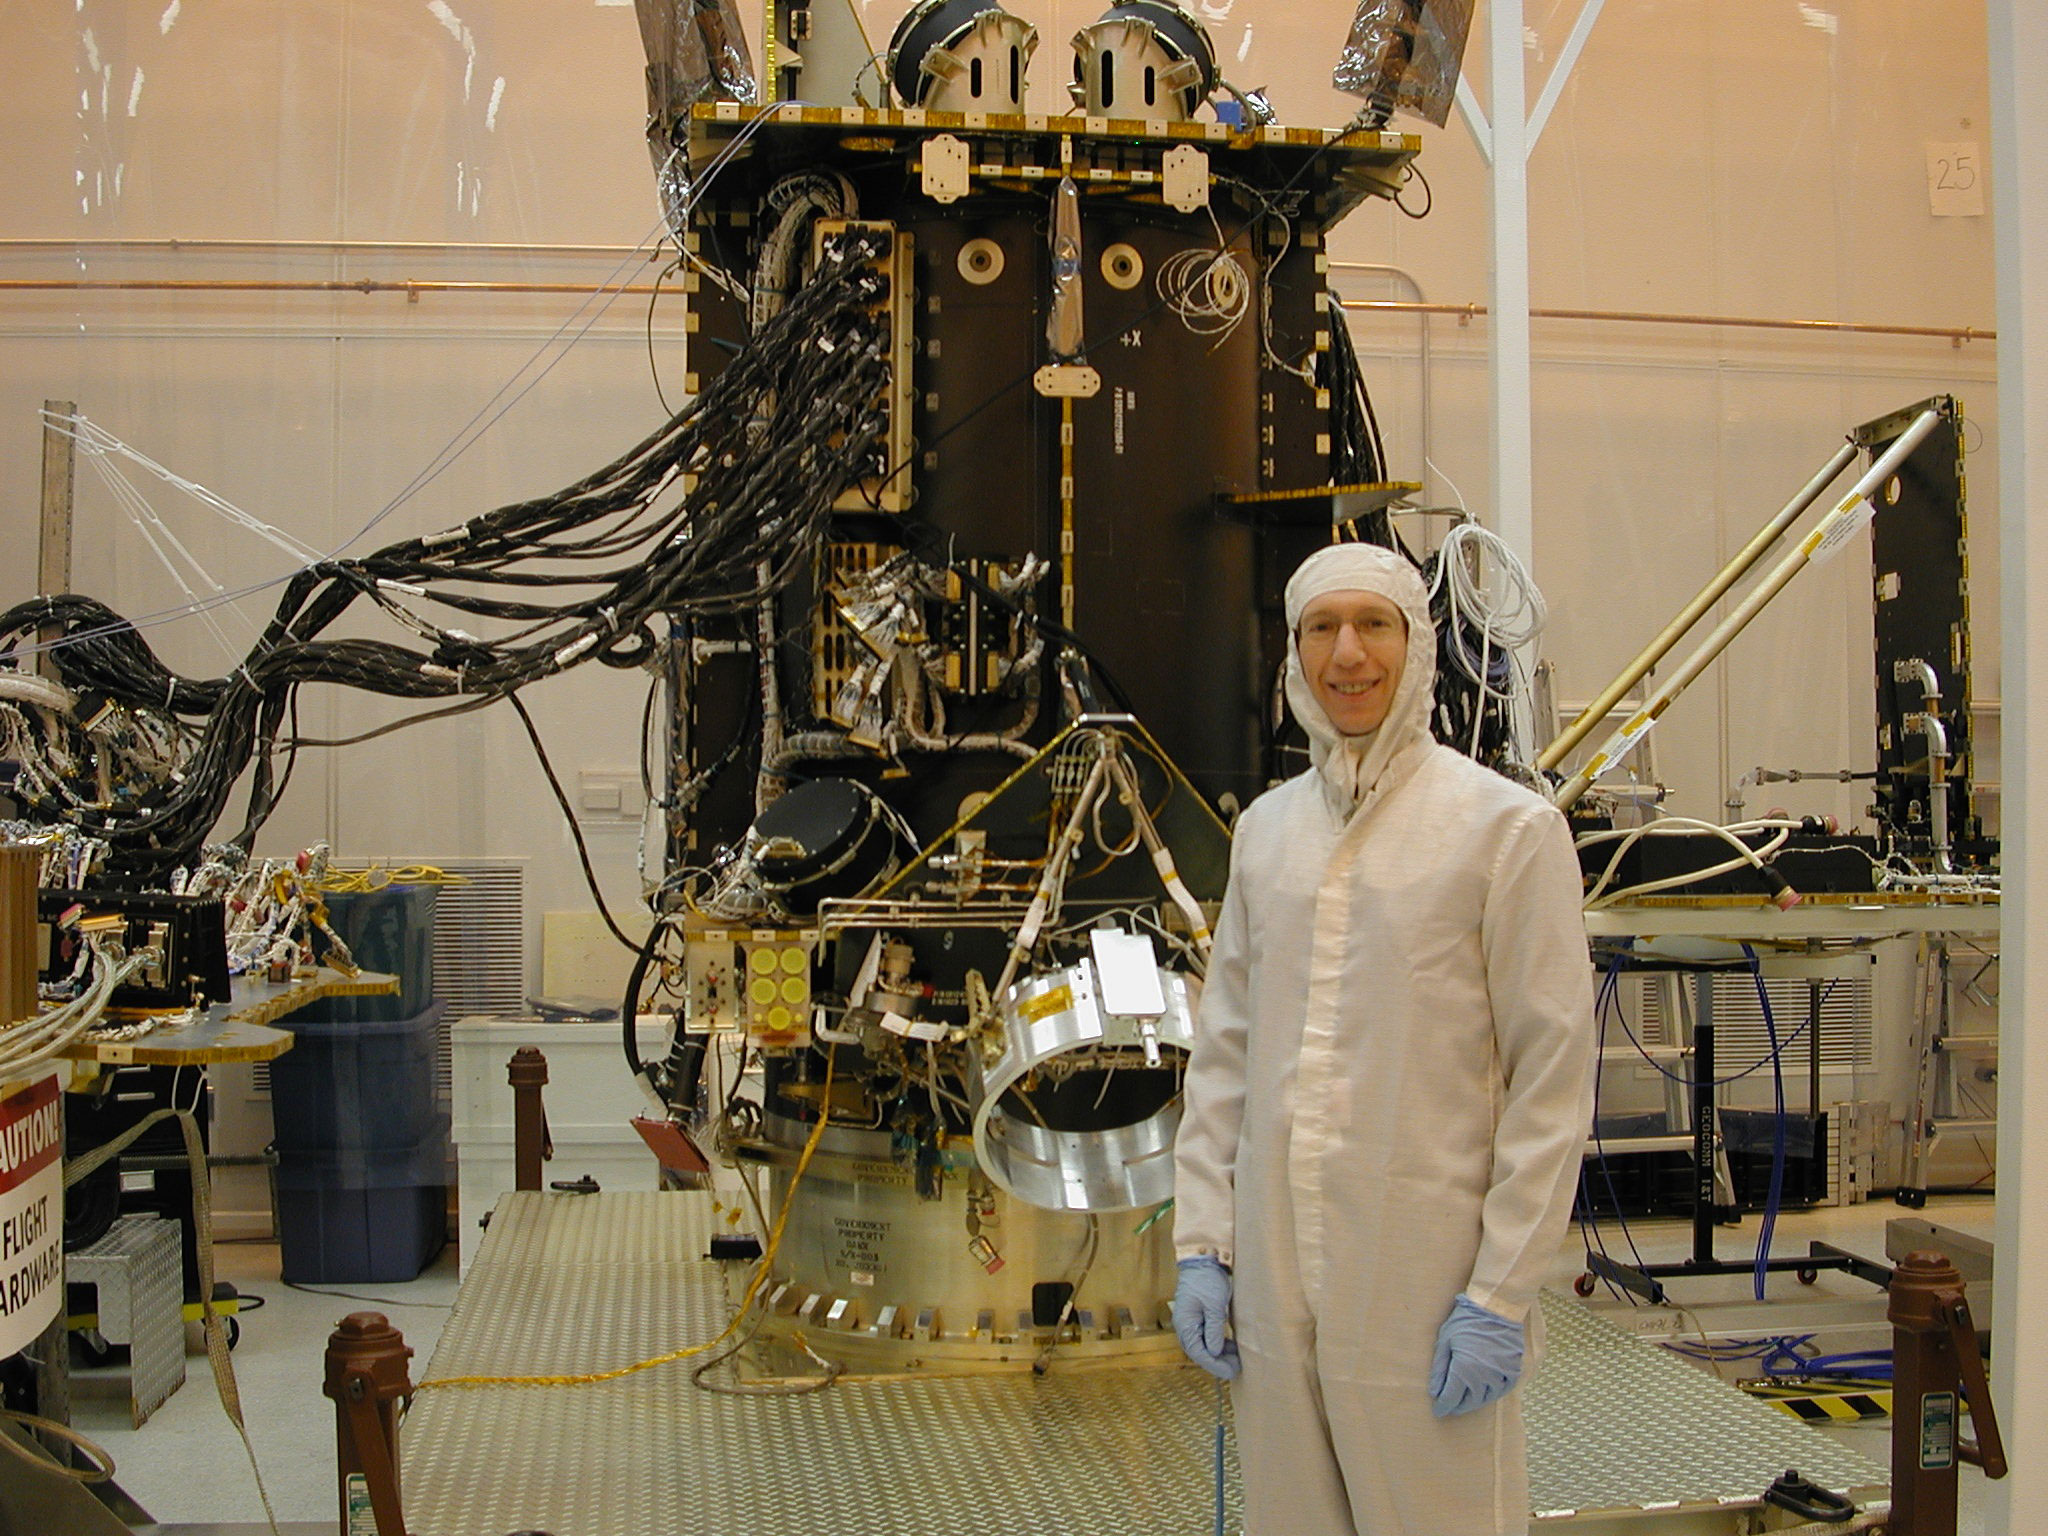 Dr. Marc Rayman, Chief Engineer and Mission Director at JPL, with Dawn during assembly. Credit: NASA